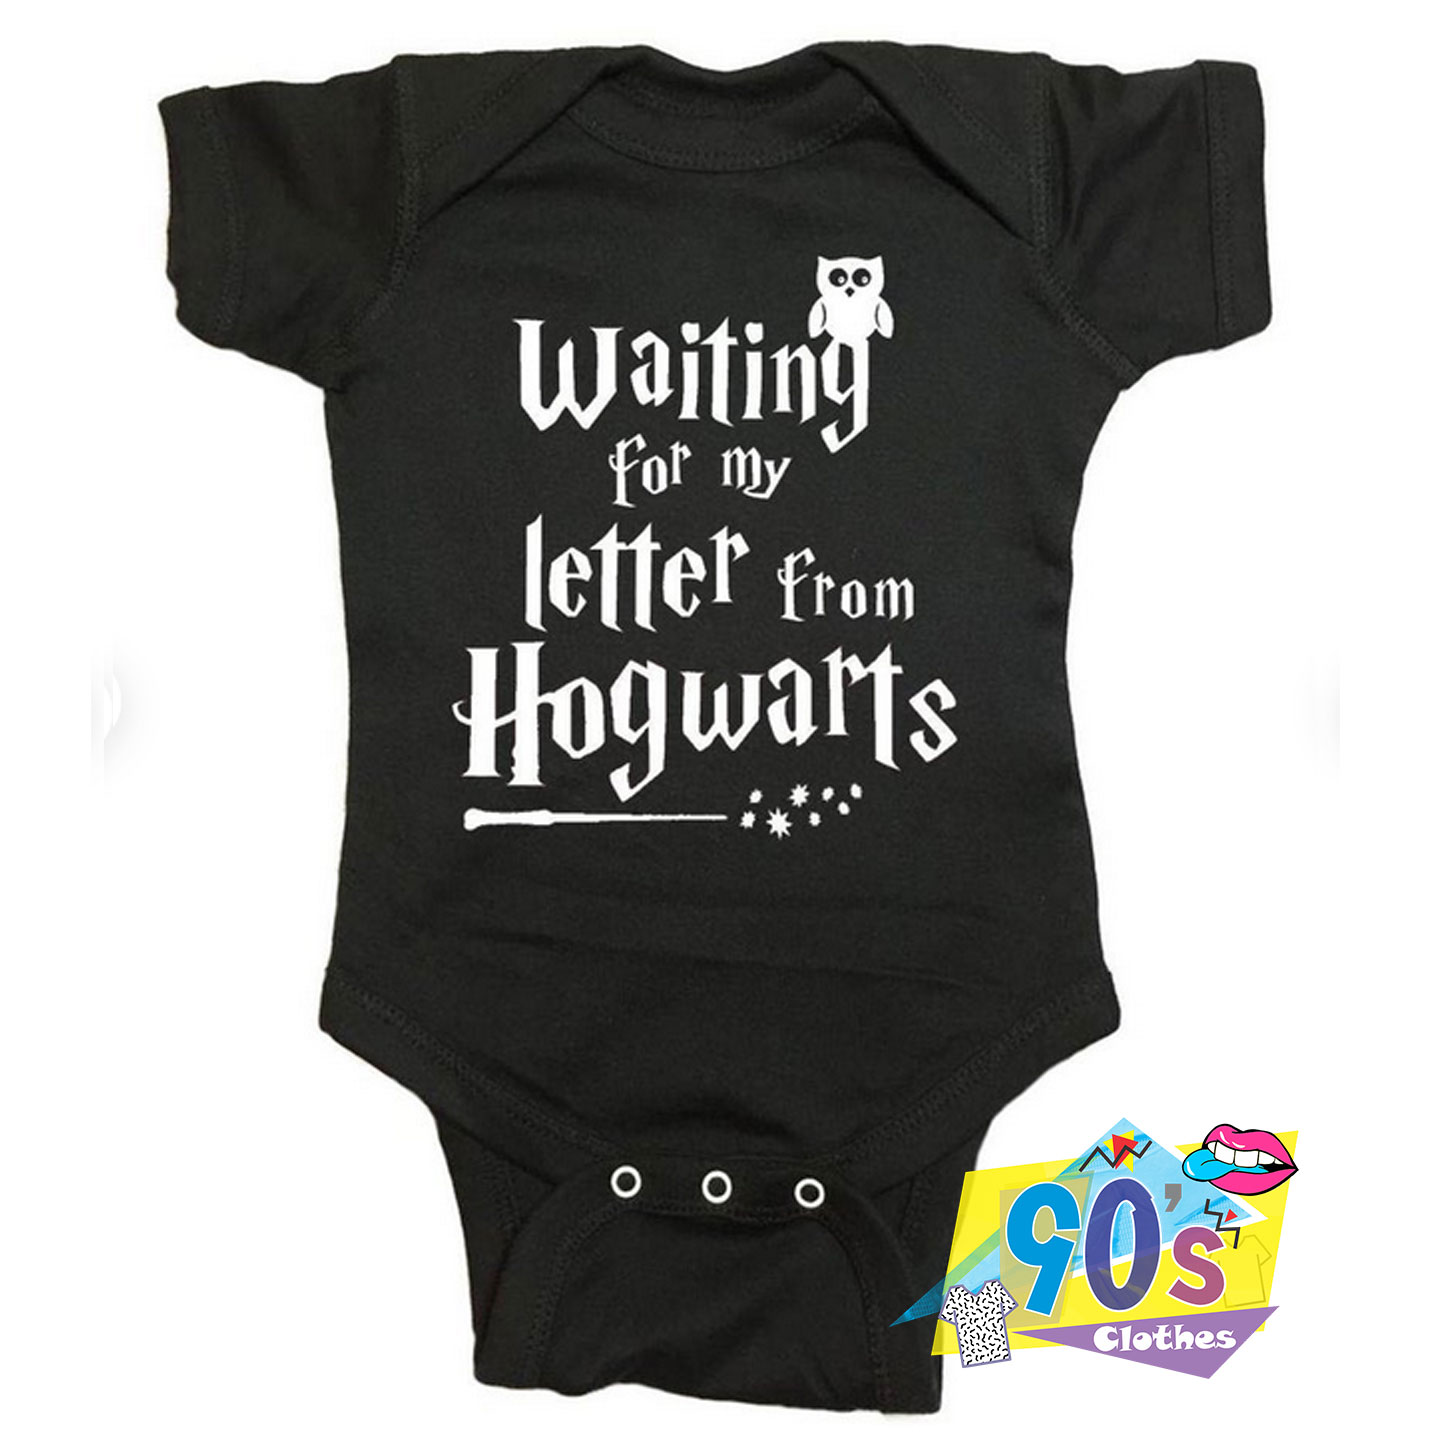 Harry Potter Baby Clothes Waiting for my Letter from Hogwarts 12 to 18 months